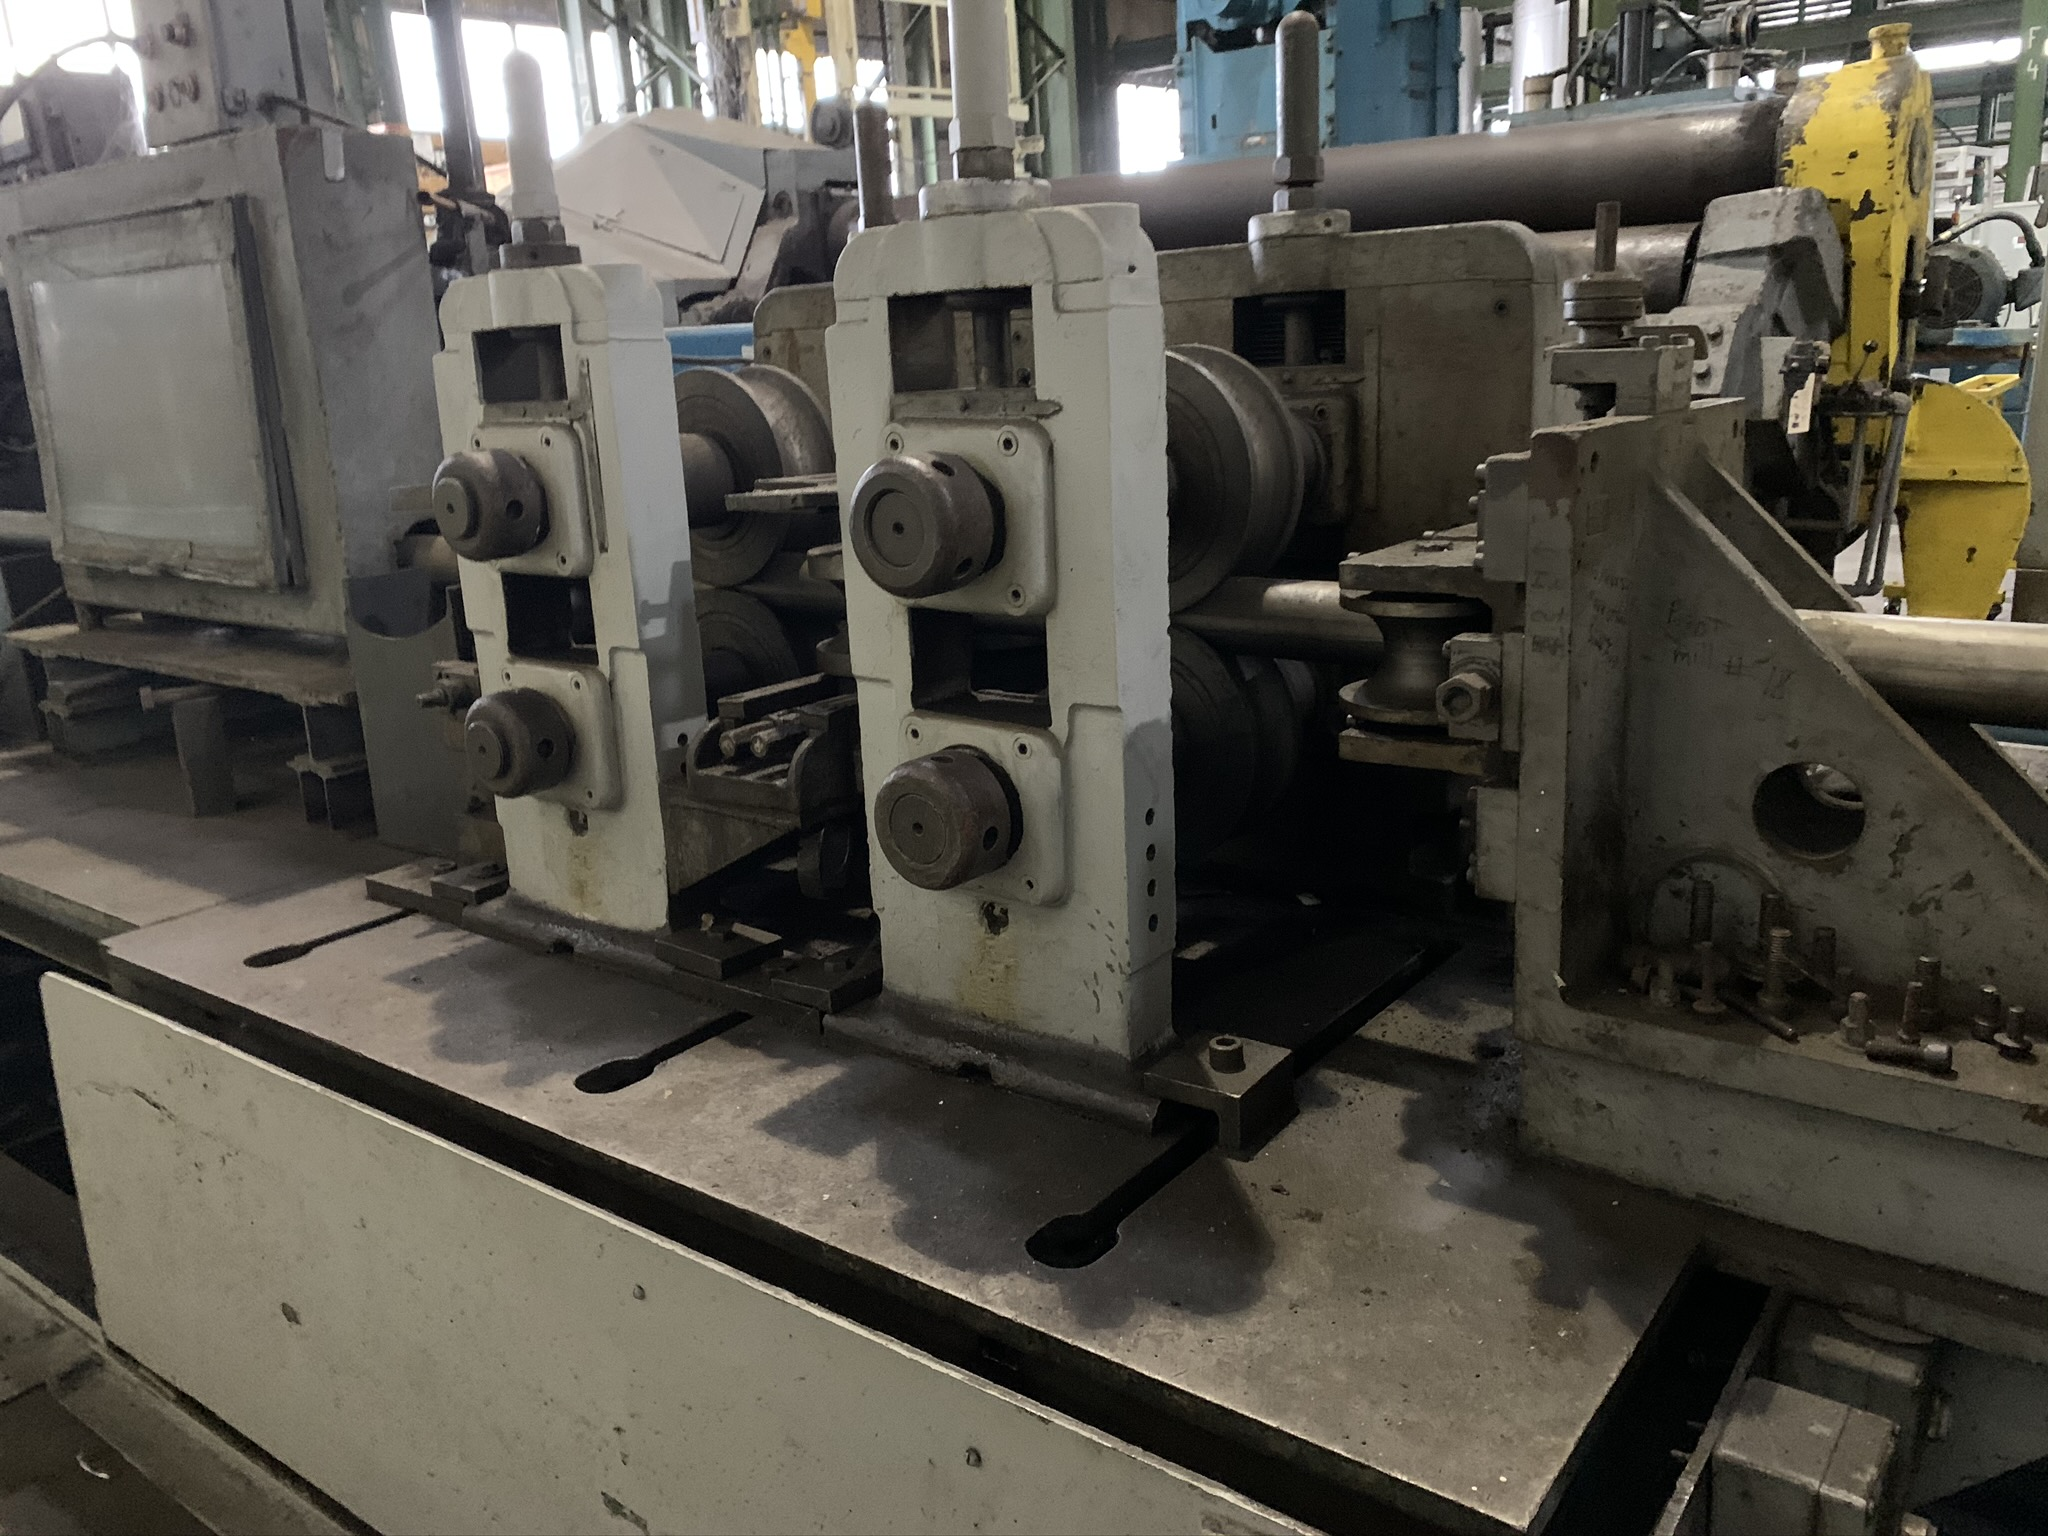 YODER MODEL M3 TUBE MILL; S/N 39774 68259-1, 9-STAND 7-DRIVEN FORMING STANDS, (2) SIZING STANDS, - Image 2 of 9